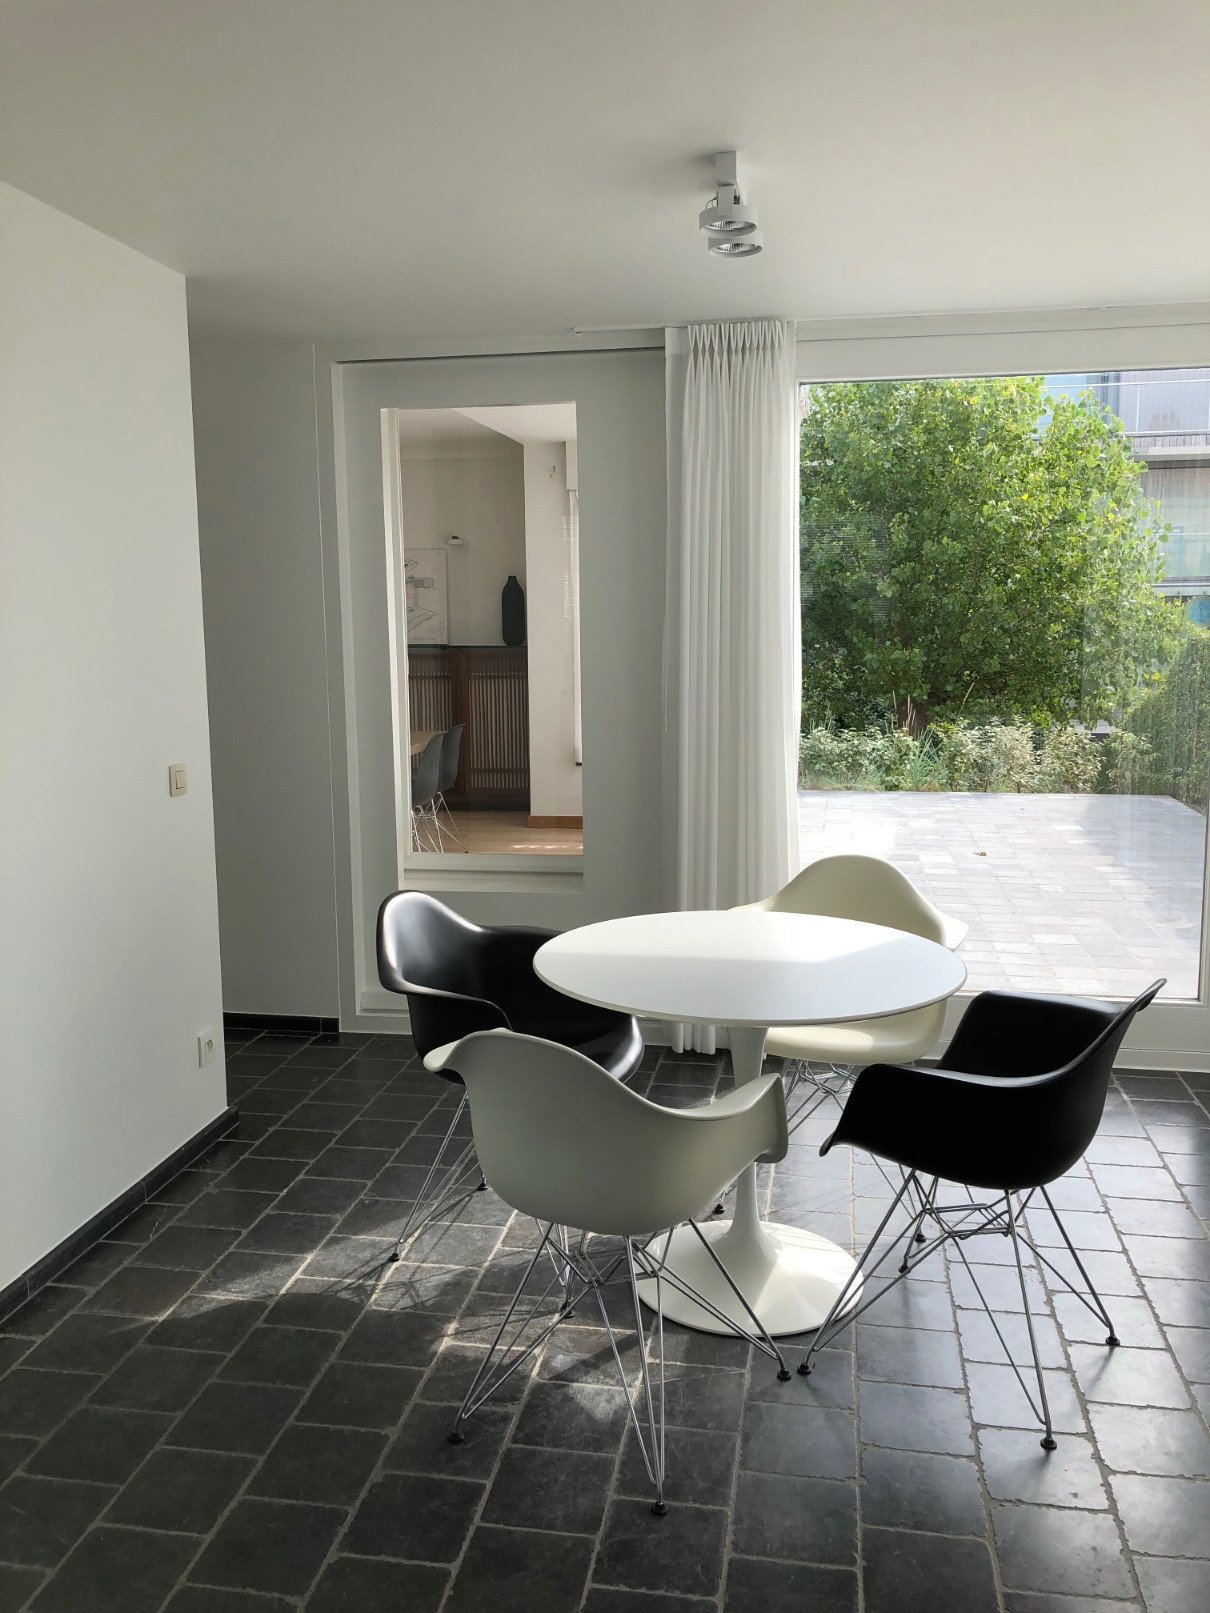 Rietveldprojects-Villa Were Di - Te Koop : Te Huur (per week)29.jpg